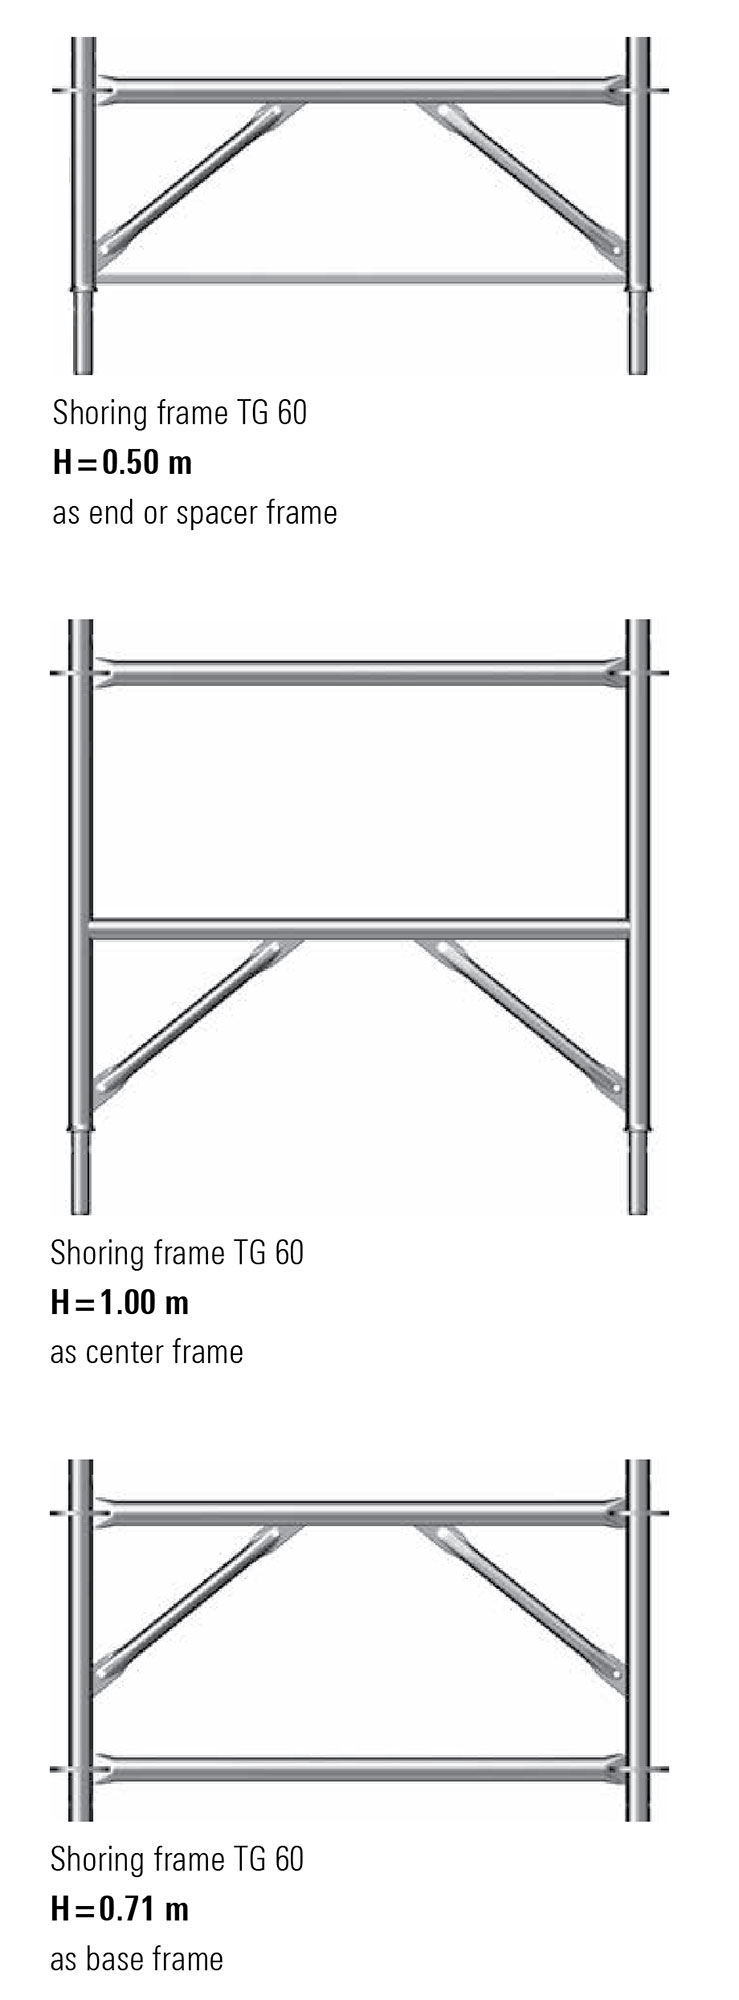 Allround Shoring TG 60 propping frames